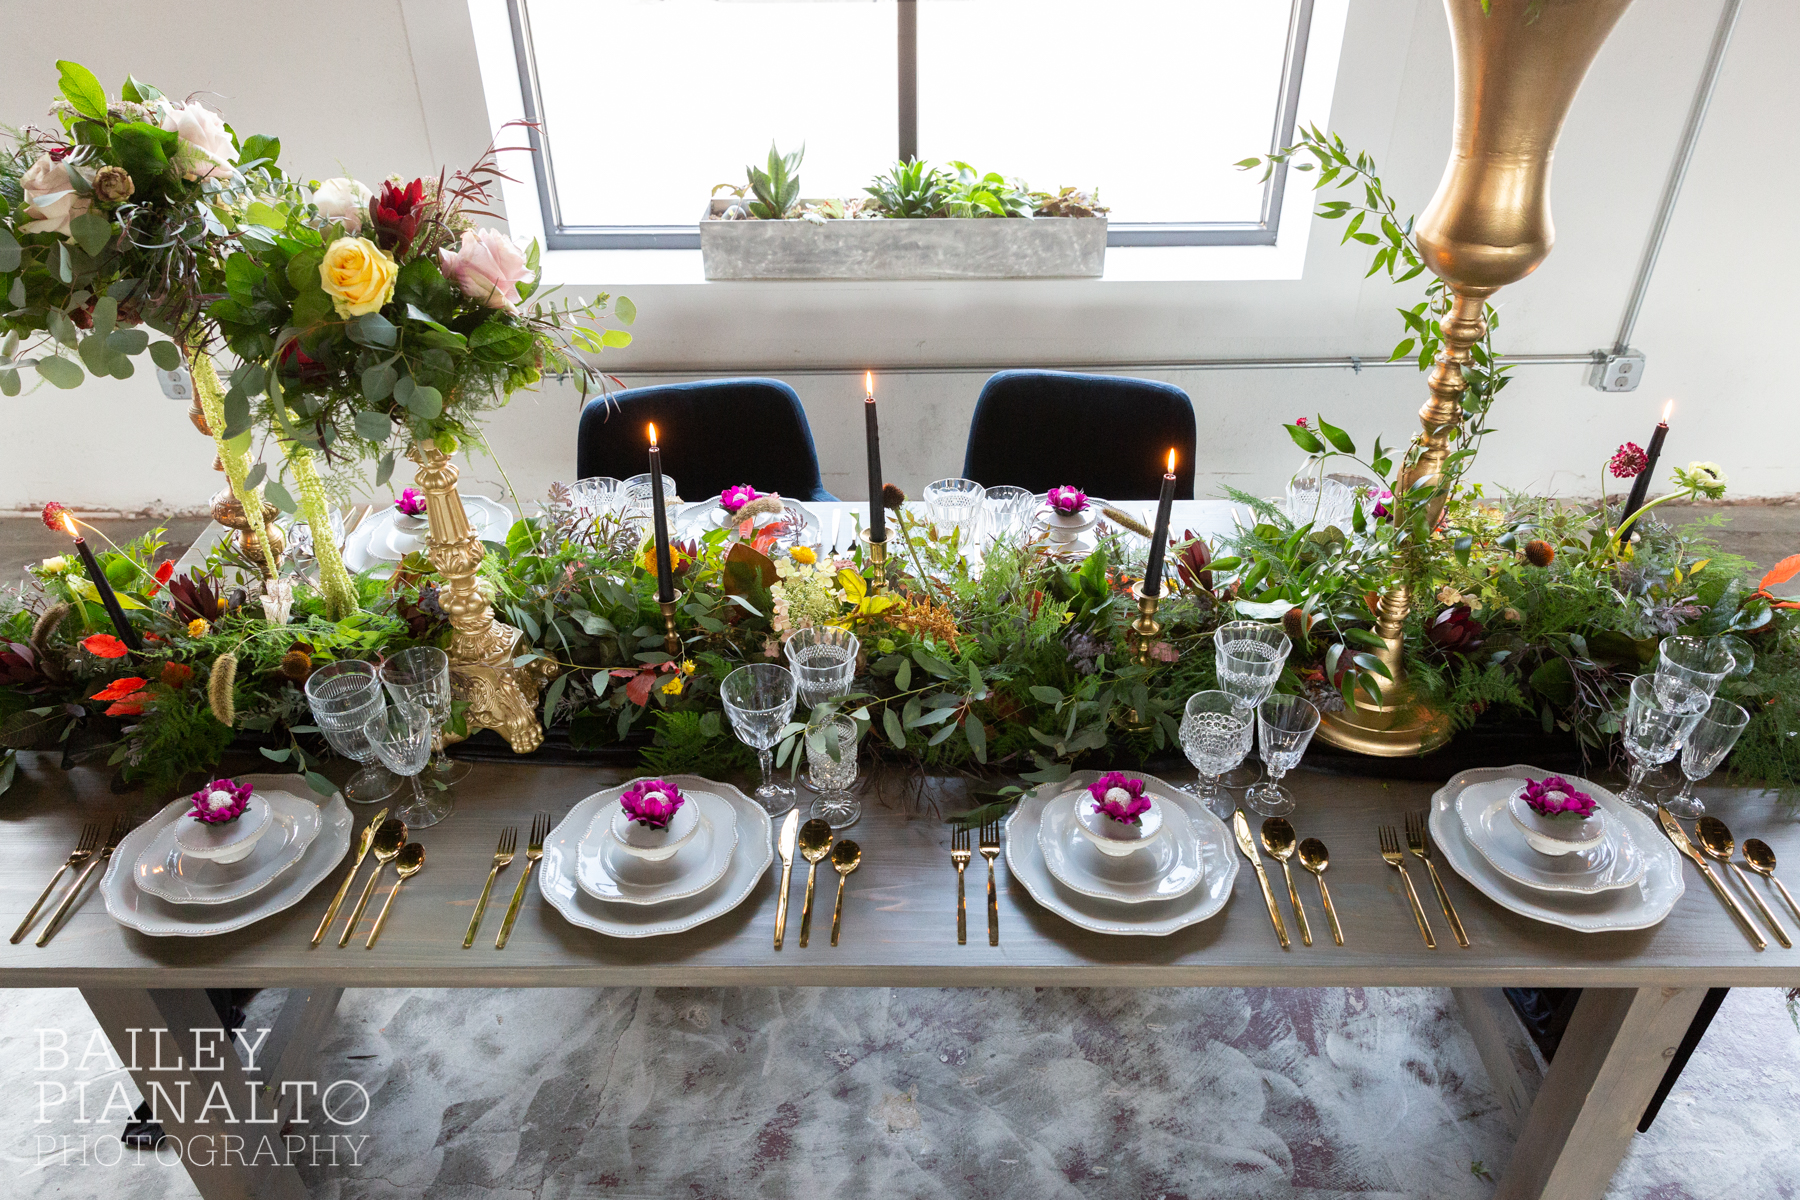 Expert Wedding Floral Planning Advice from Fiore Floral Studio